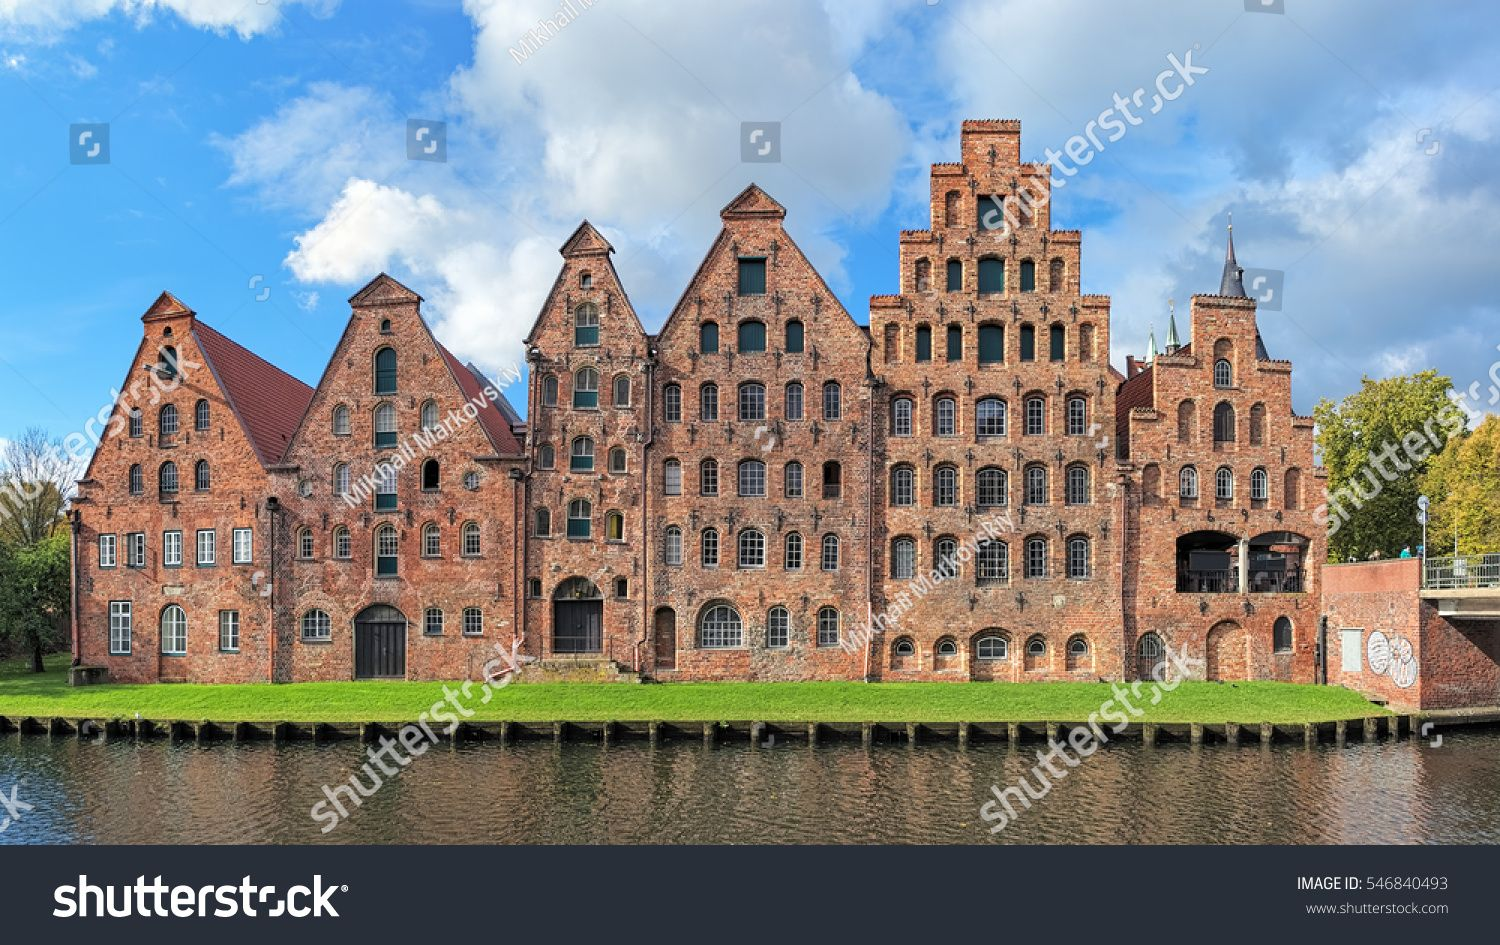 Salzspeicher Salt Storehouses Six Historic Brick Buildings On The Upper Trave River In Lubeck Germany Amazing Buildings Brick Building